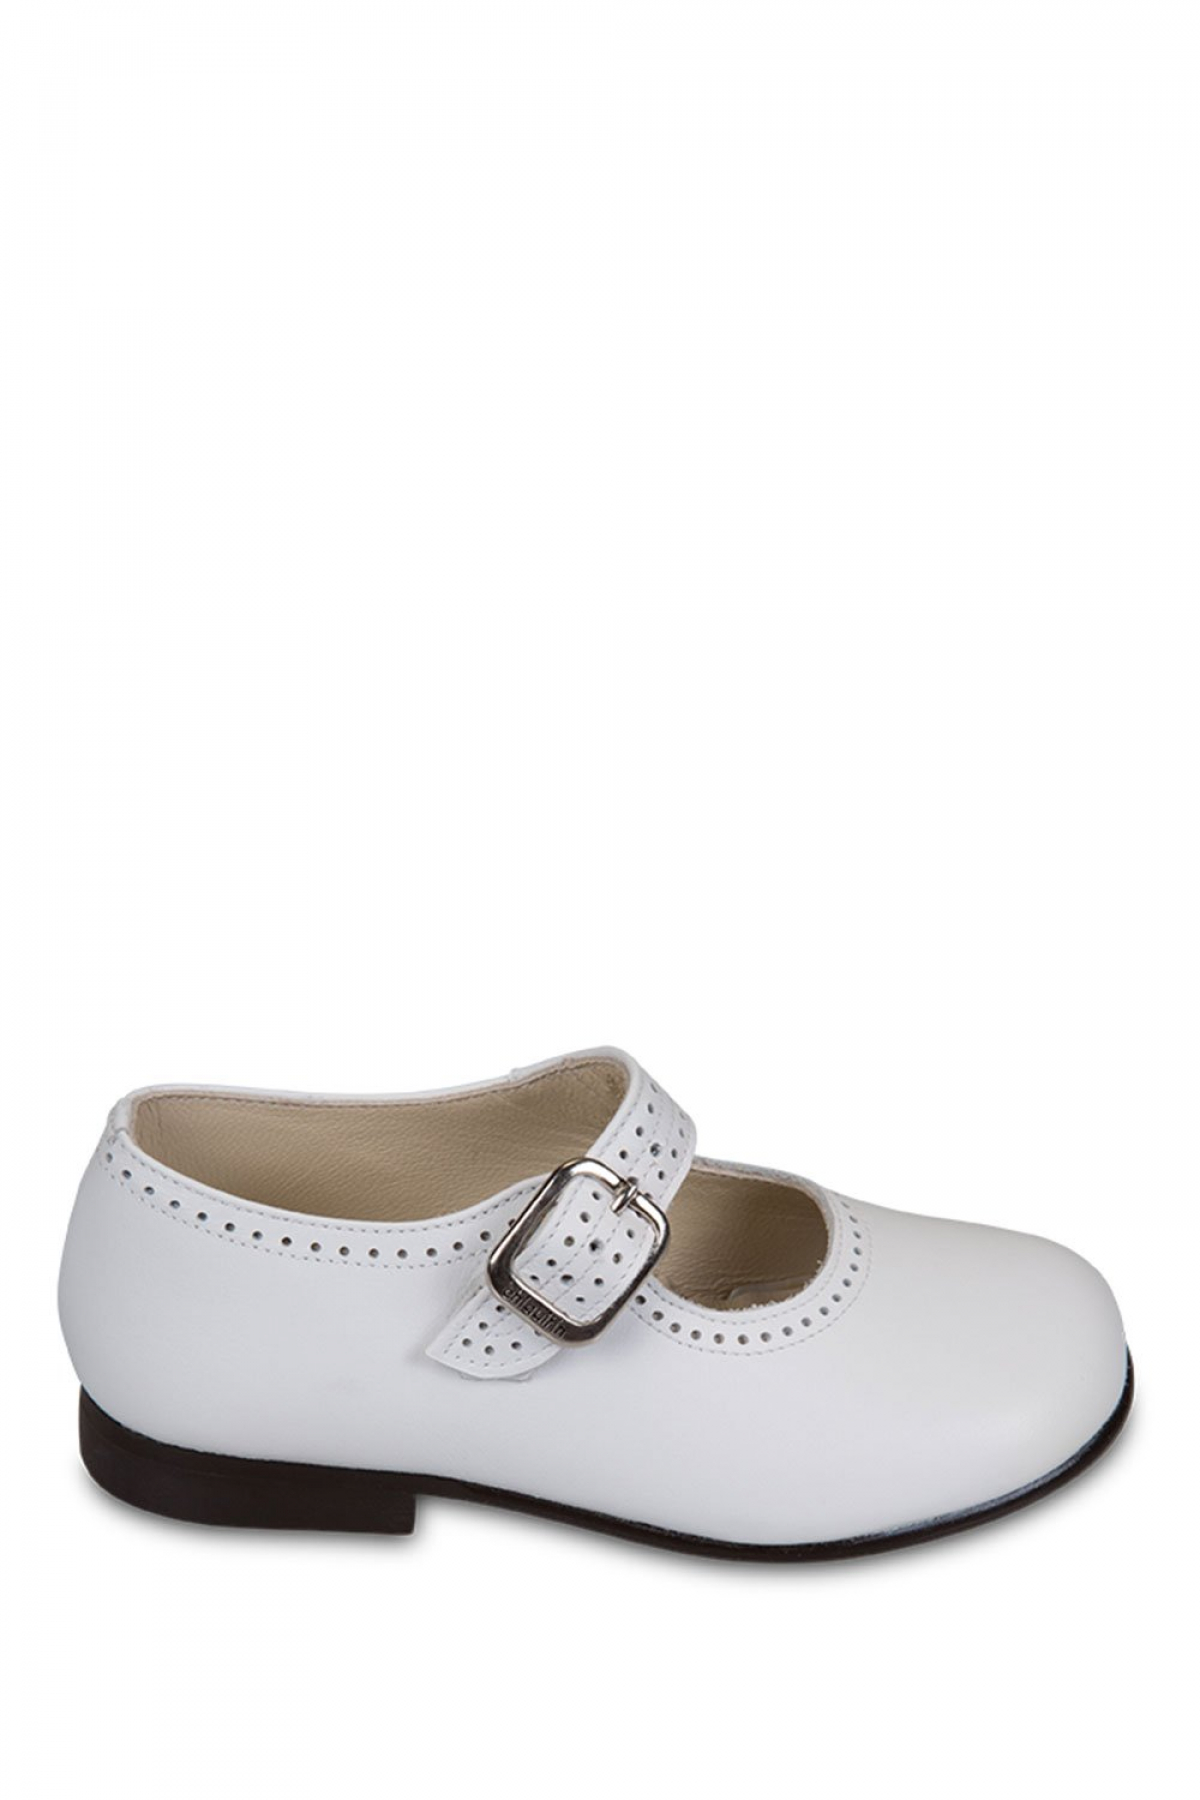 27098 Chiquitin Kids Shoes 30-37 White